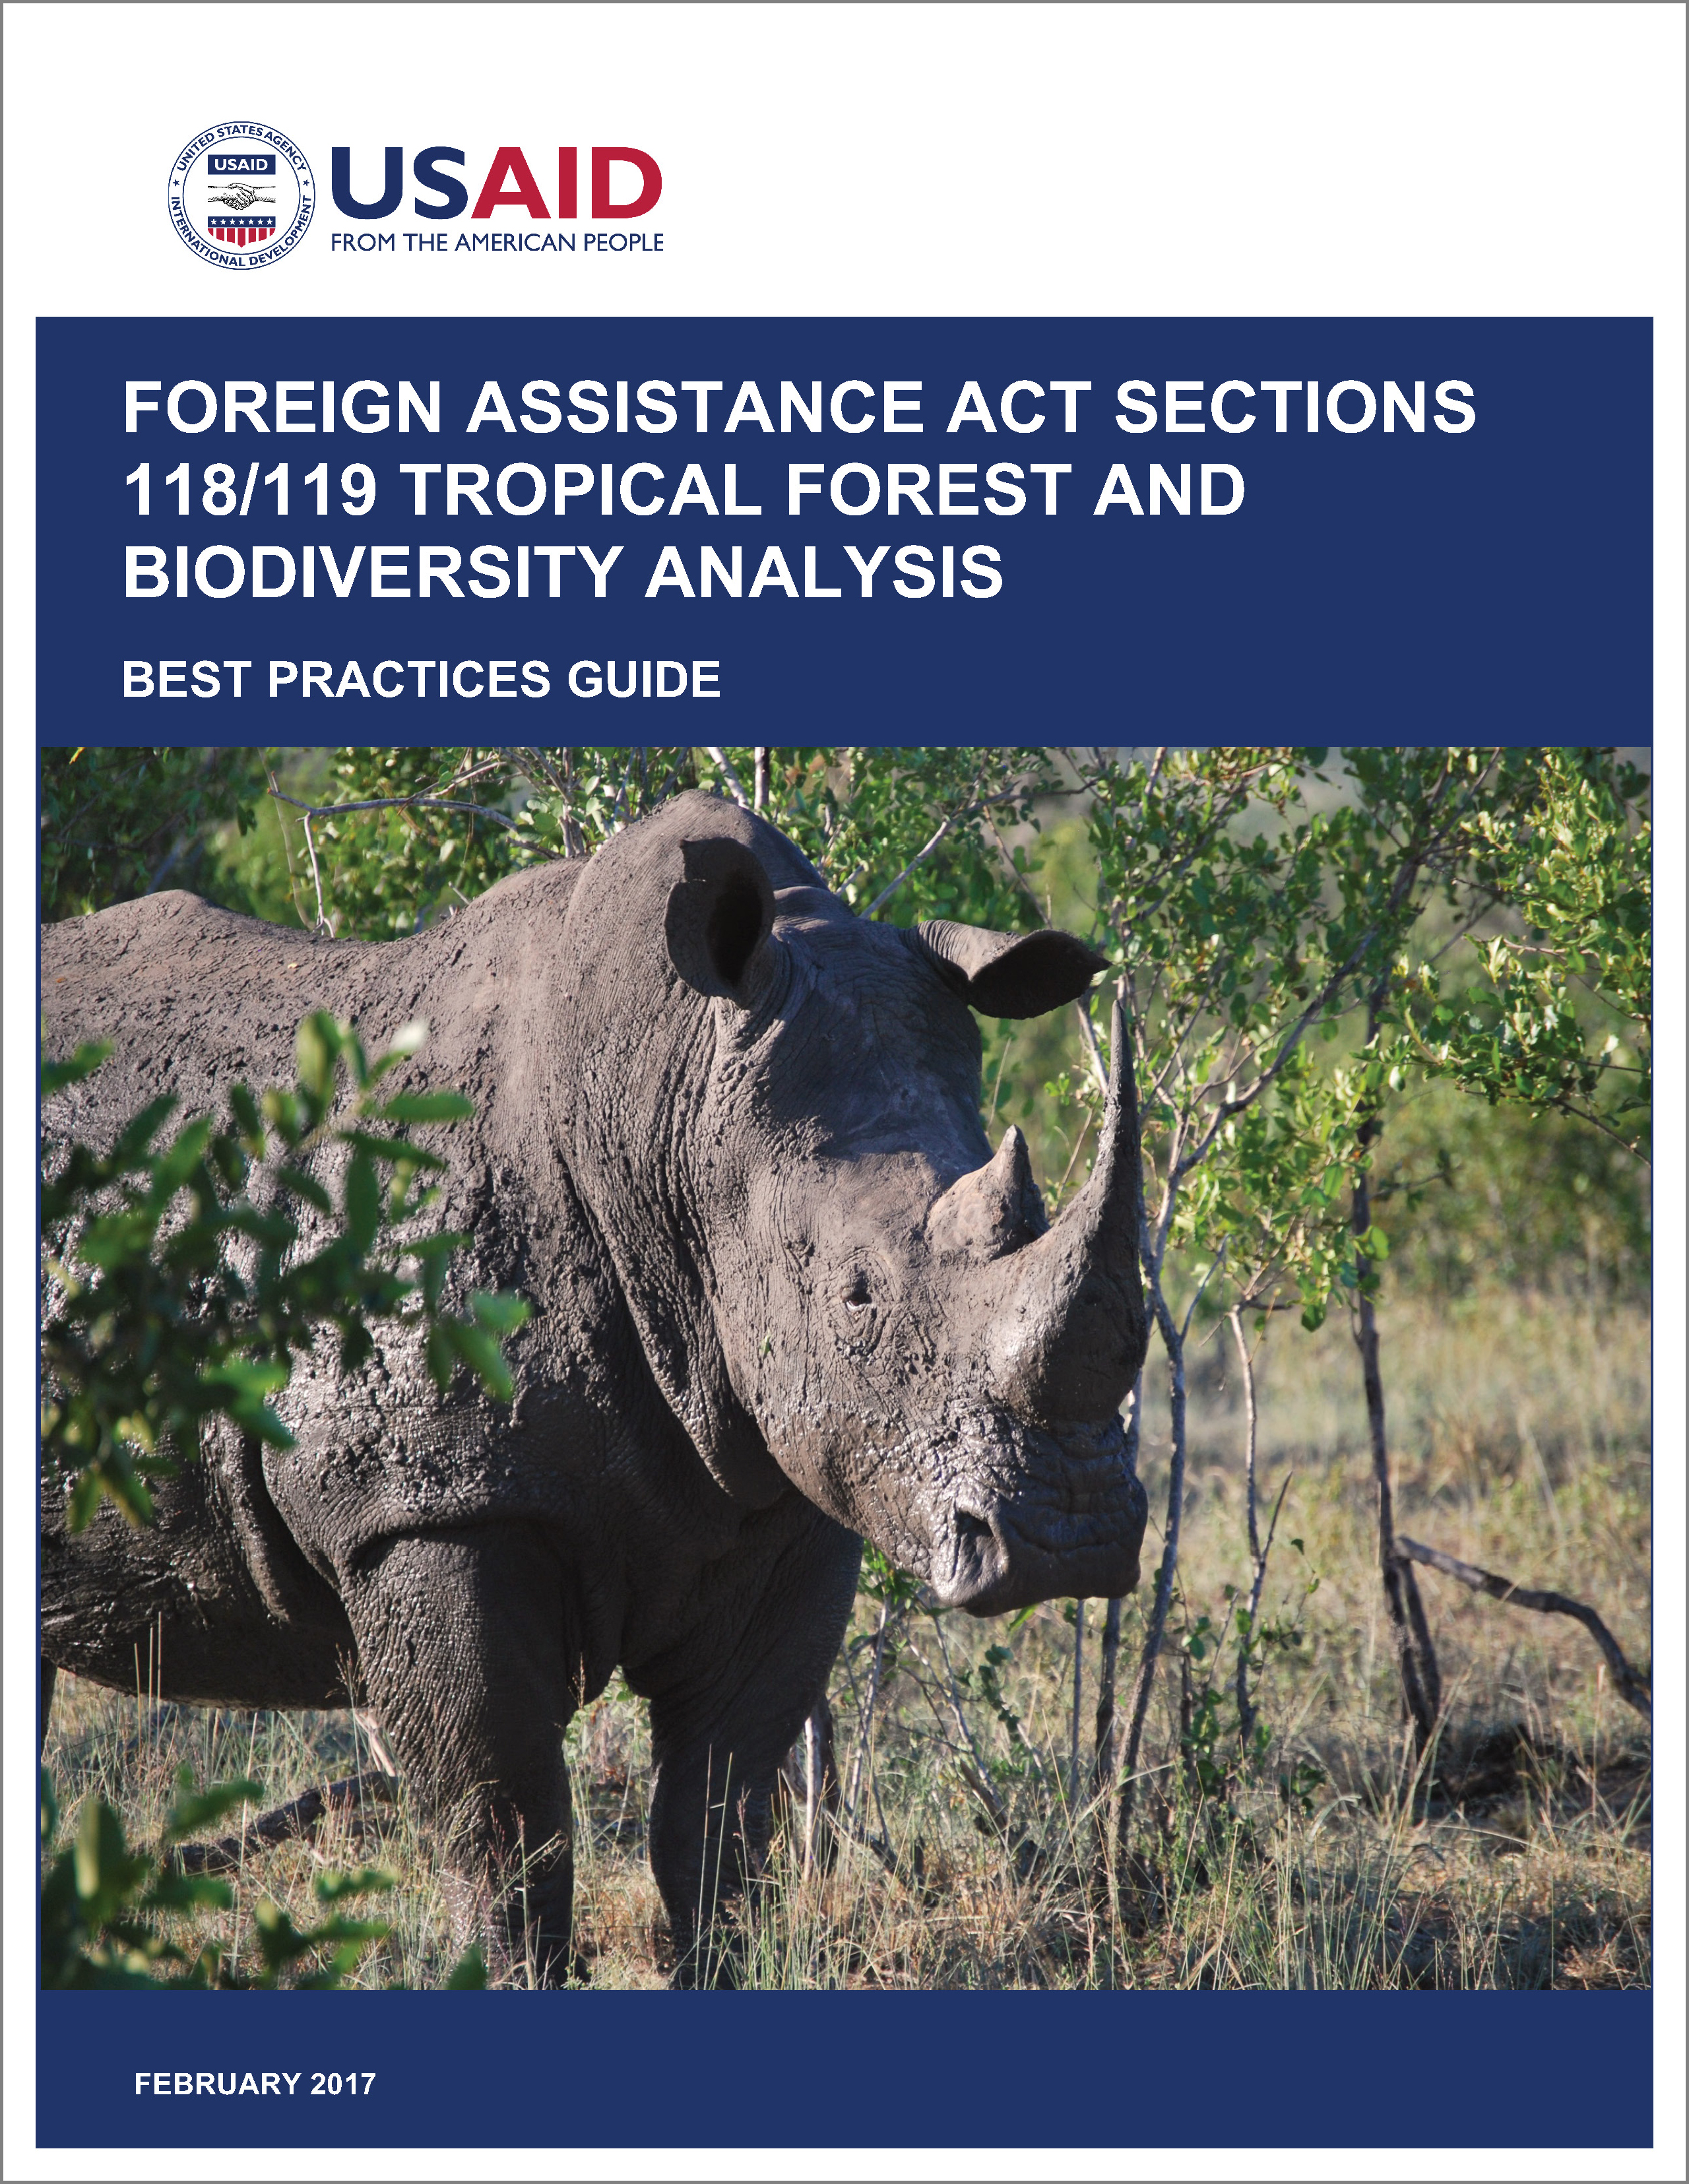 Foreign Assistance Act Sections 118/119 Tropical Forest and Biodiversity Analysis cover image